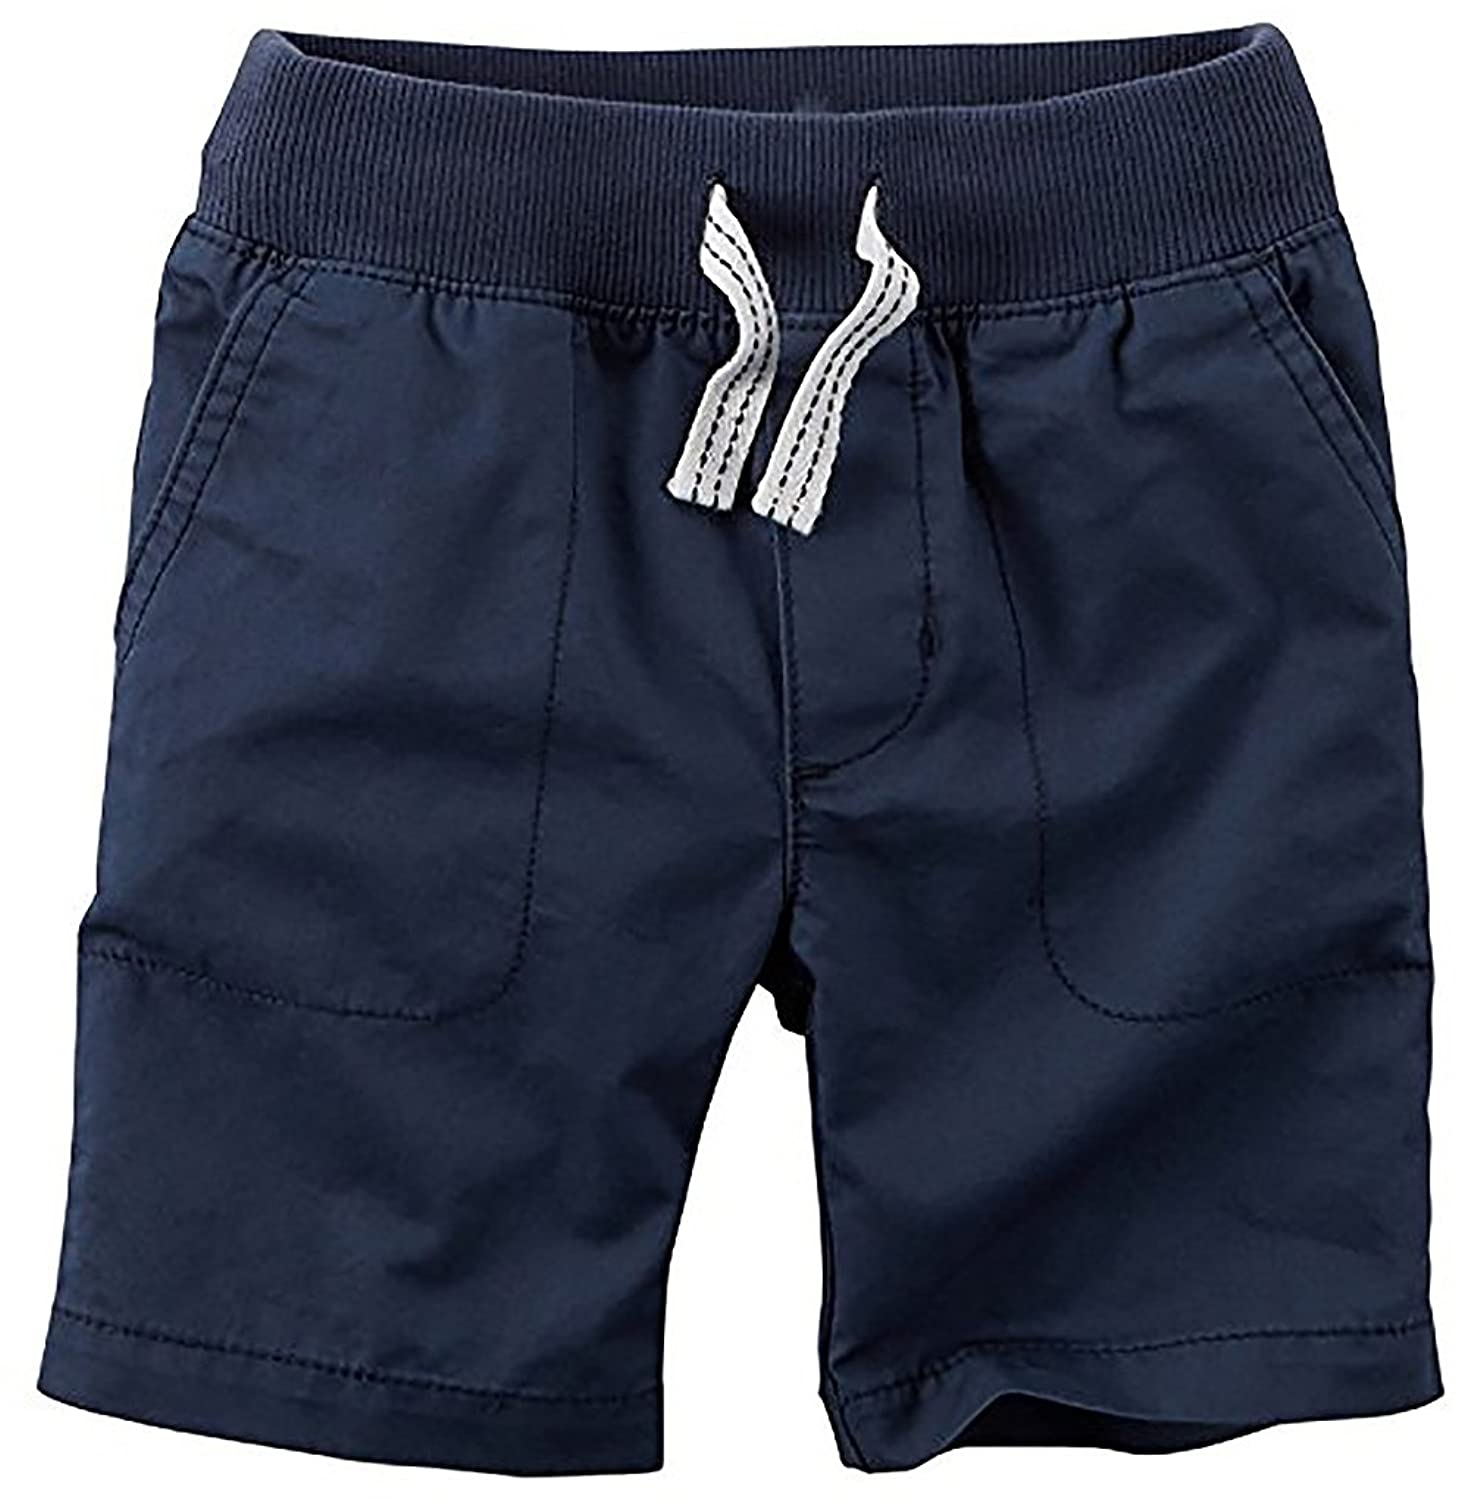 Carter 's Boys ' Navy Flat Front Shorts with Drawstring ( 5?)